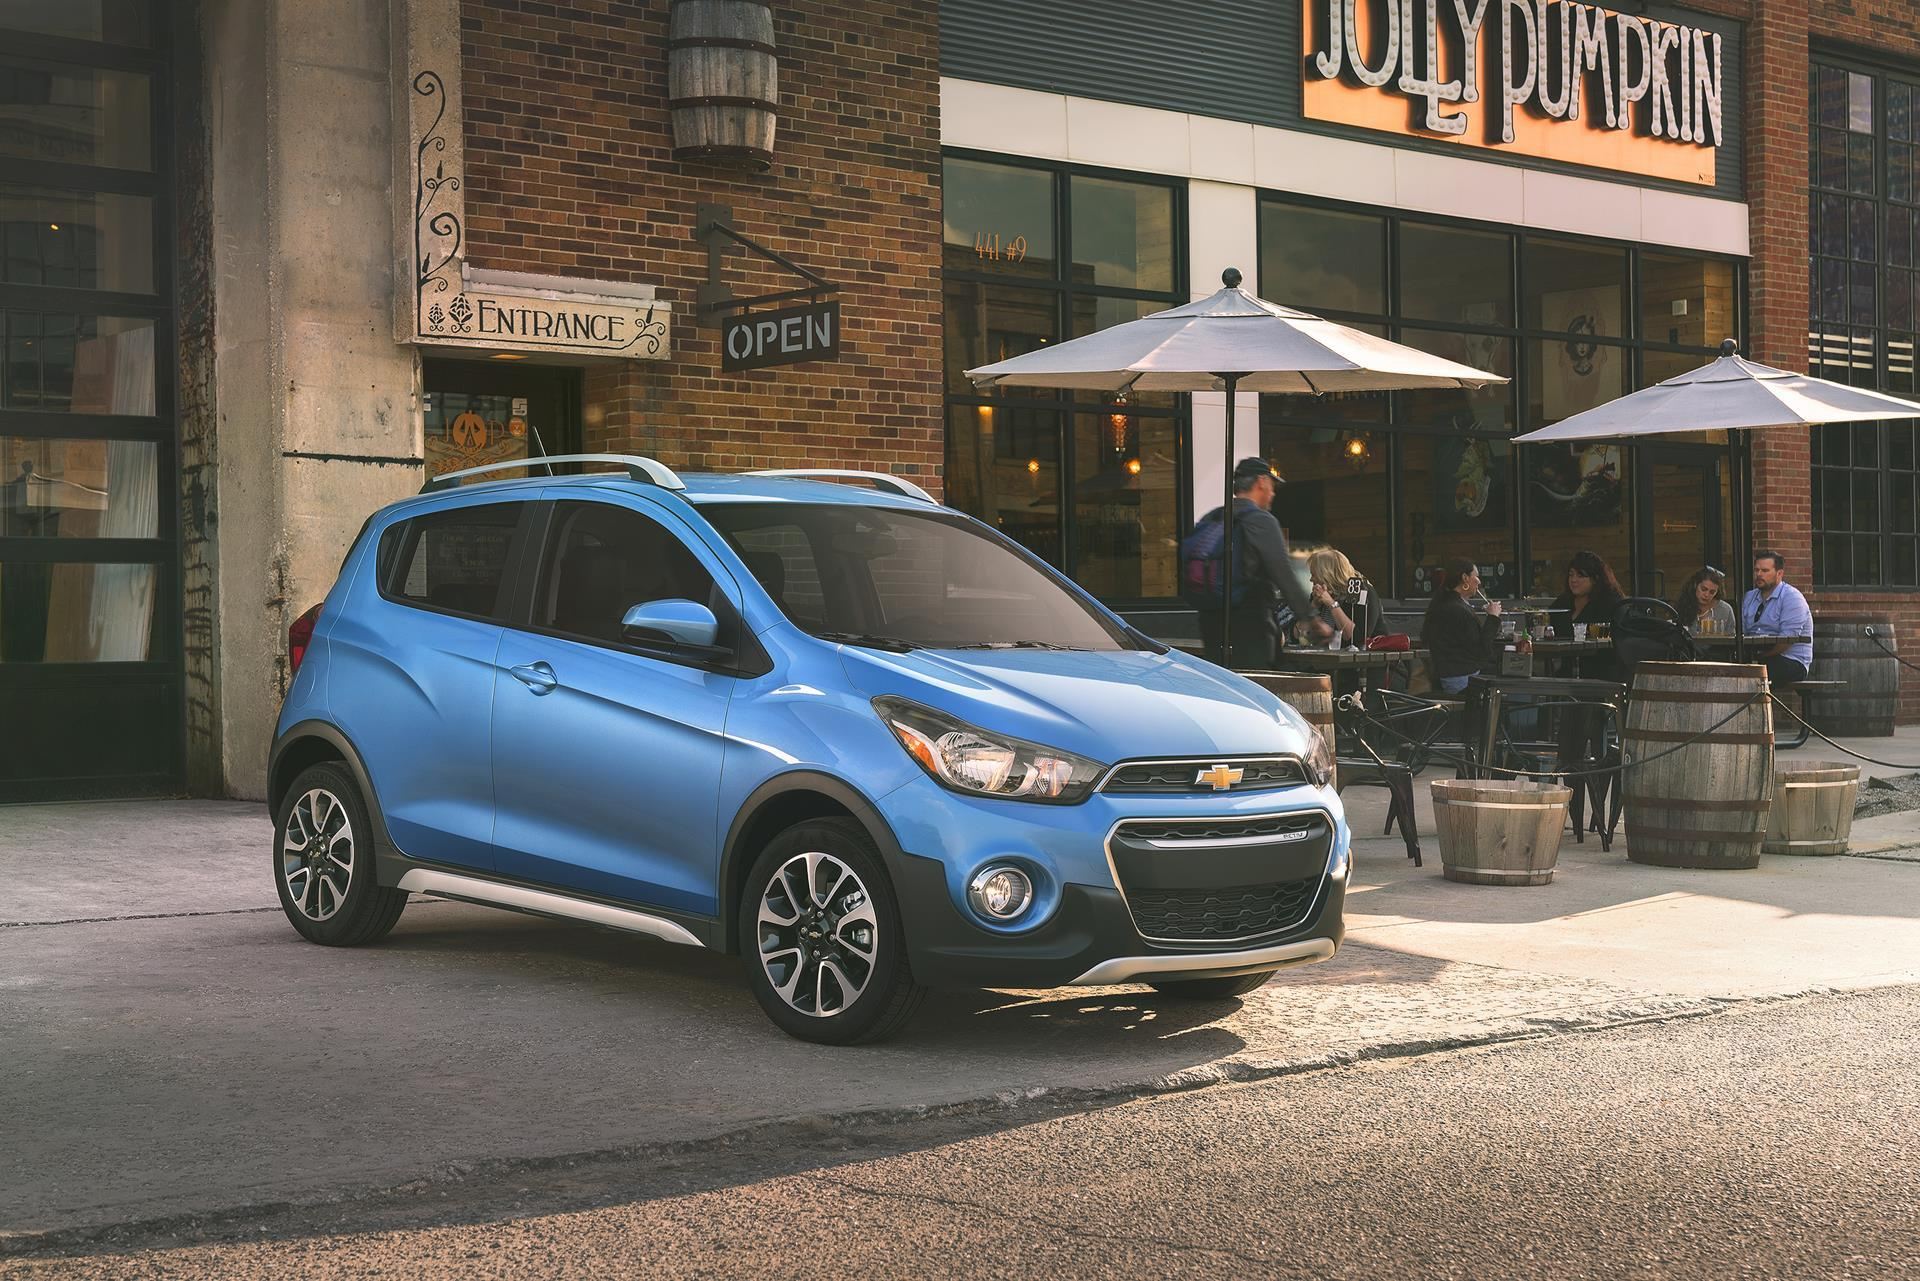 45 New 2020 Chevrolet Spark Concept and Review